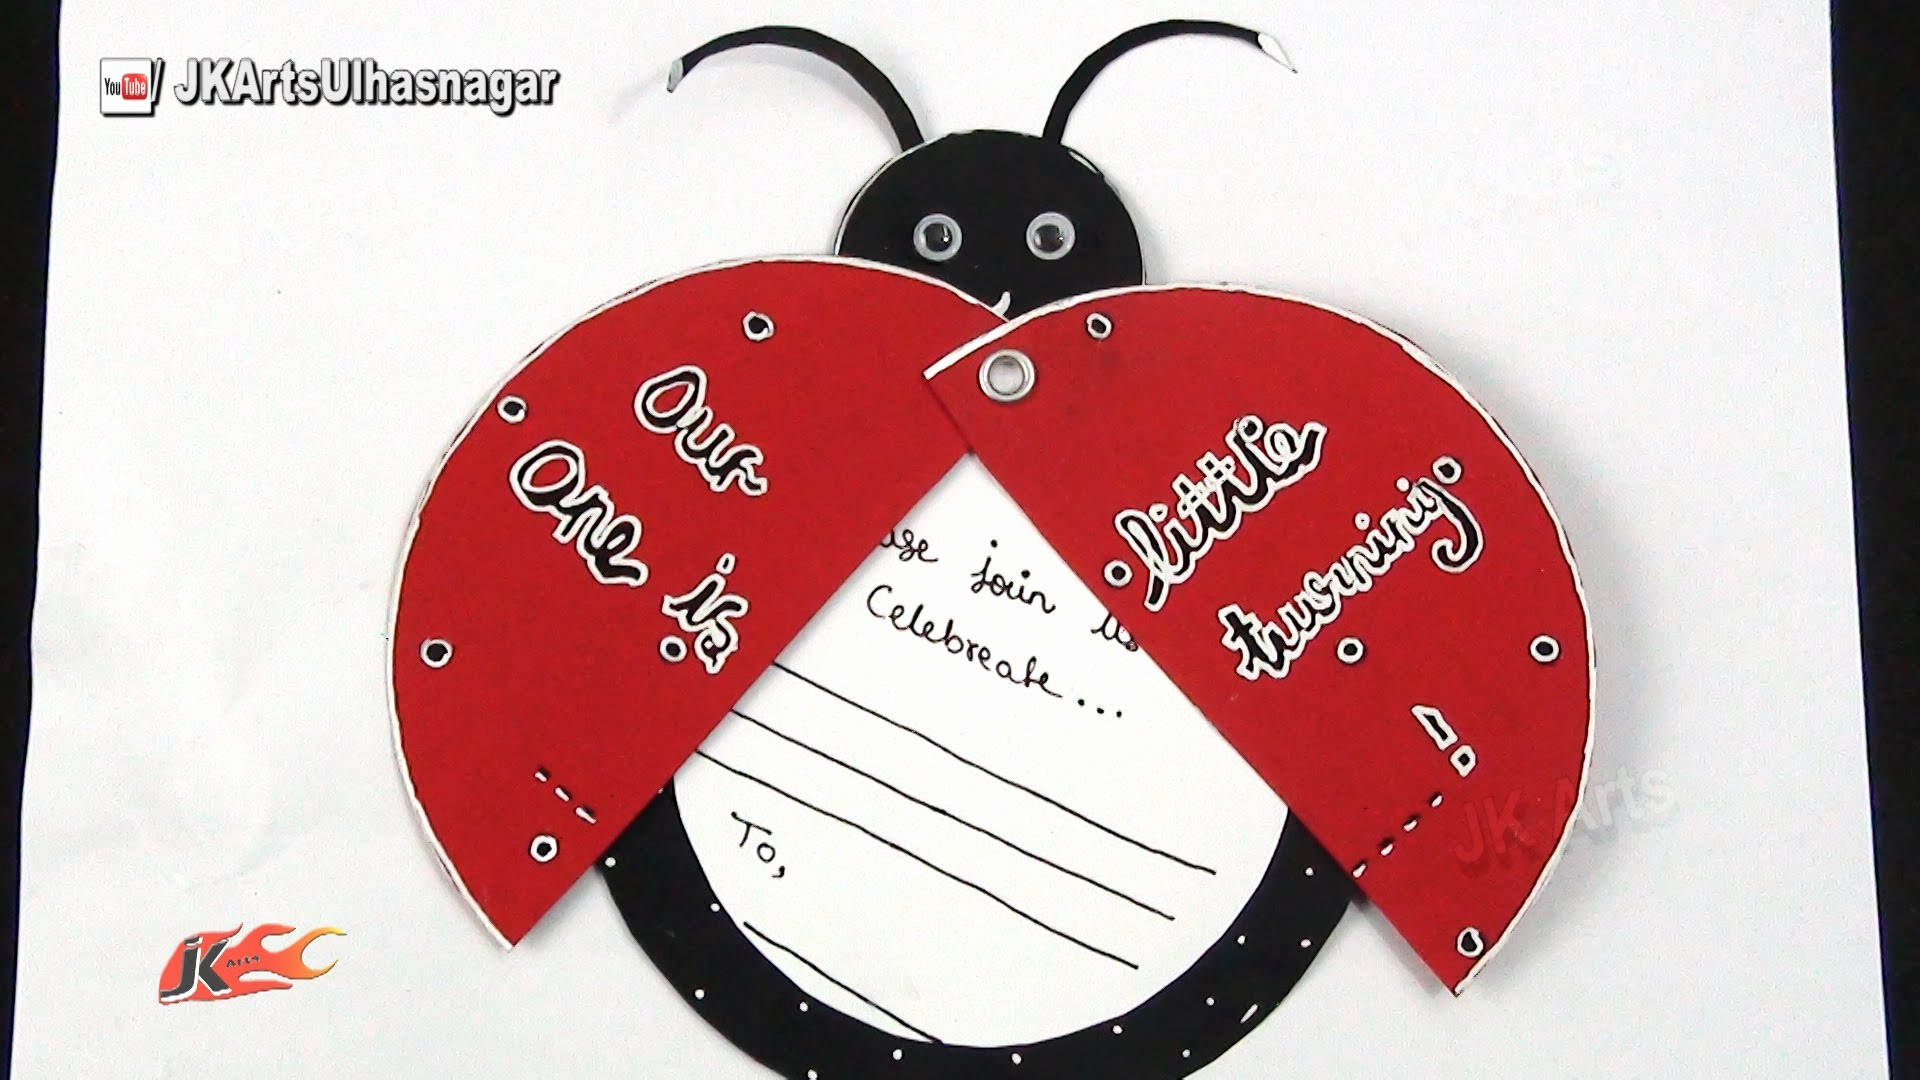 birthday invitation design ideas ; handmade-birthday-invitation-cards-ideas-new-diy-ladybug-inexpensive-birthday-invitations-card-idea-of-handmade-birthday-invitation-cards-ideas